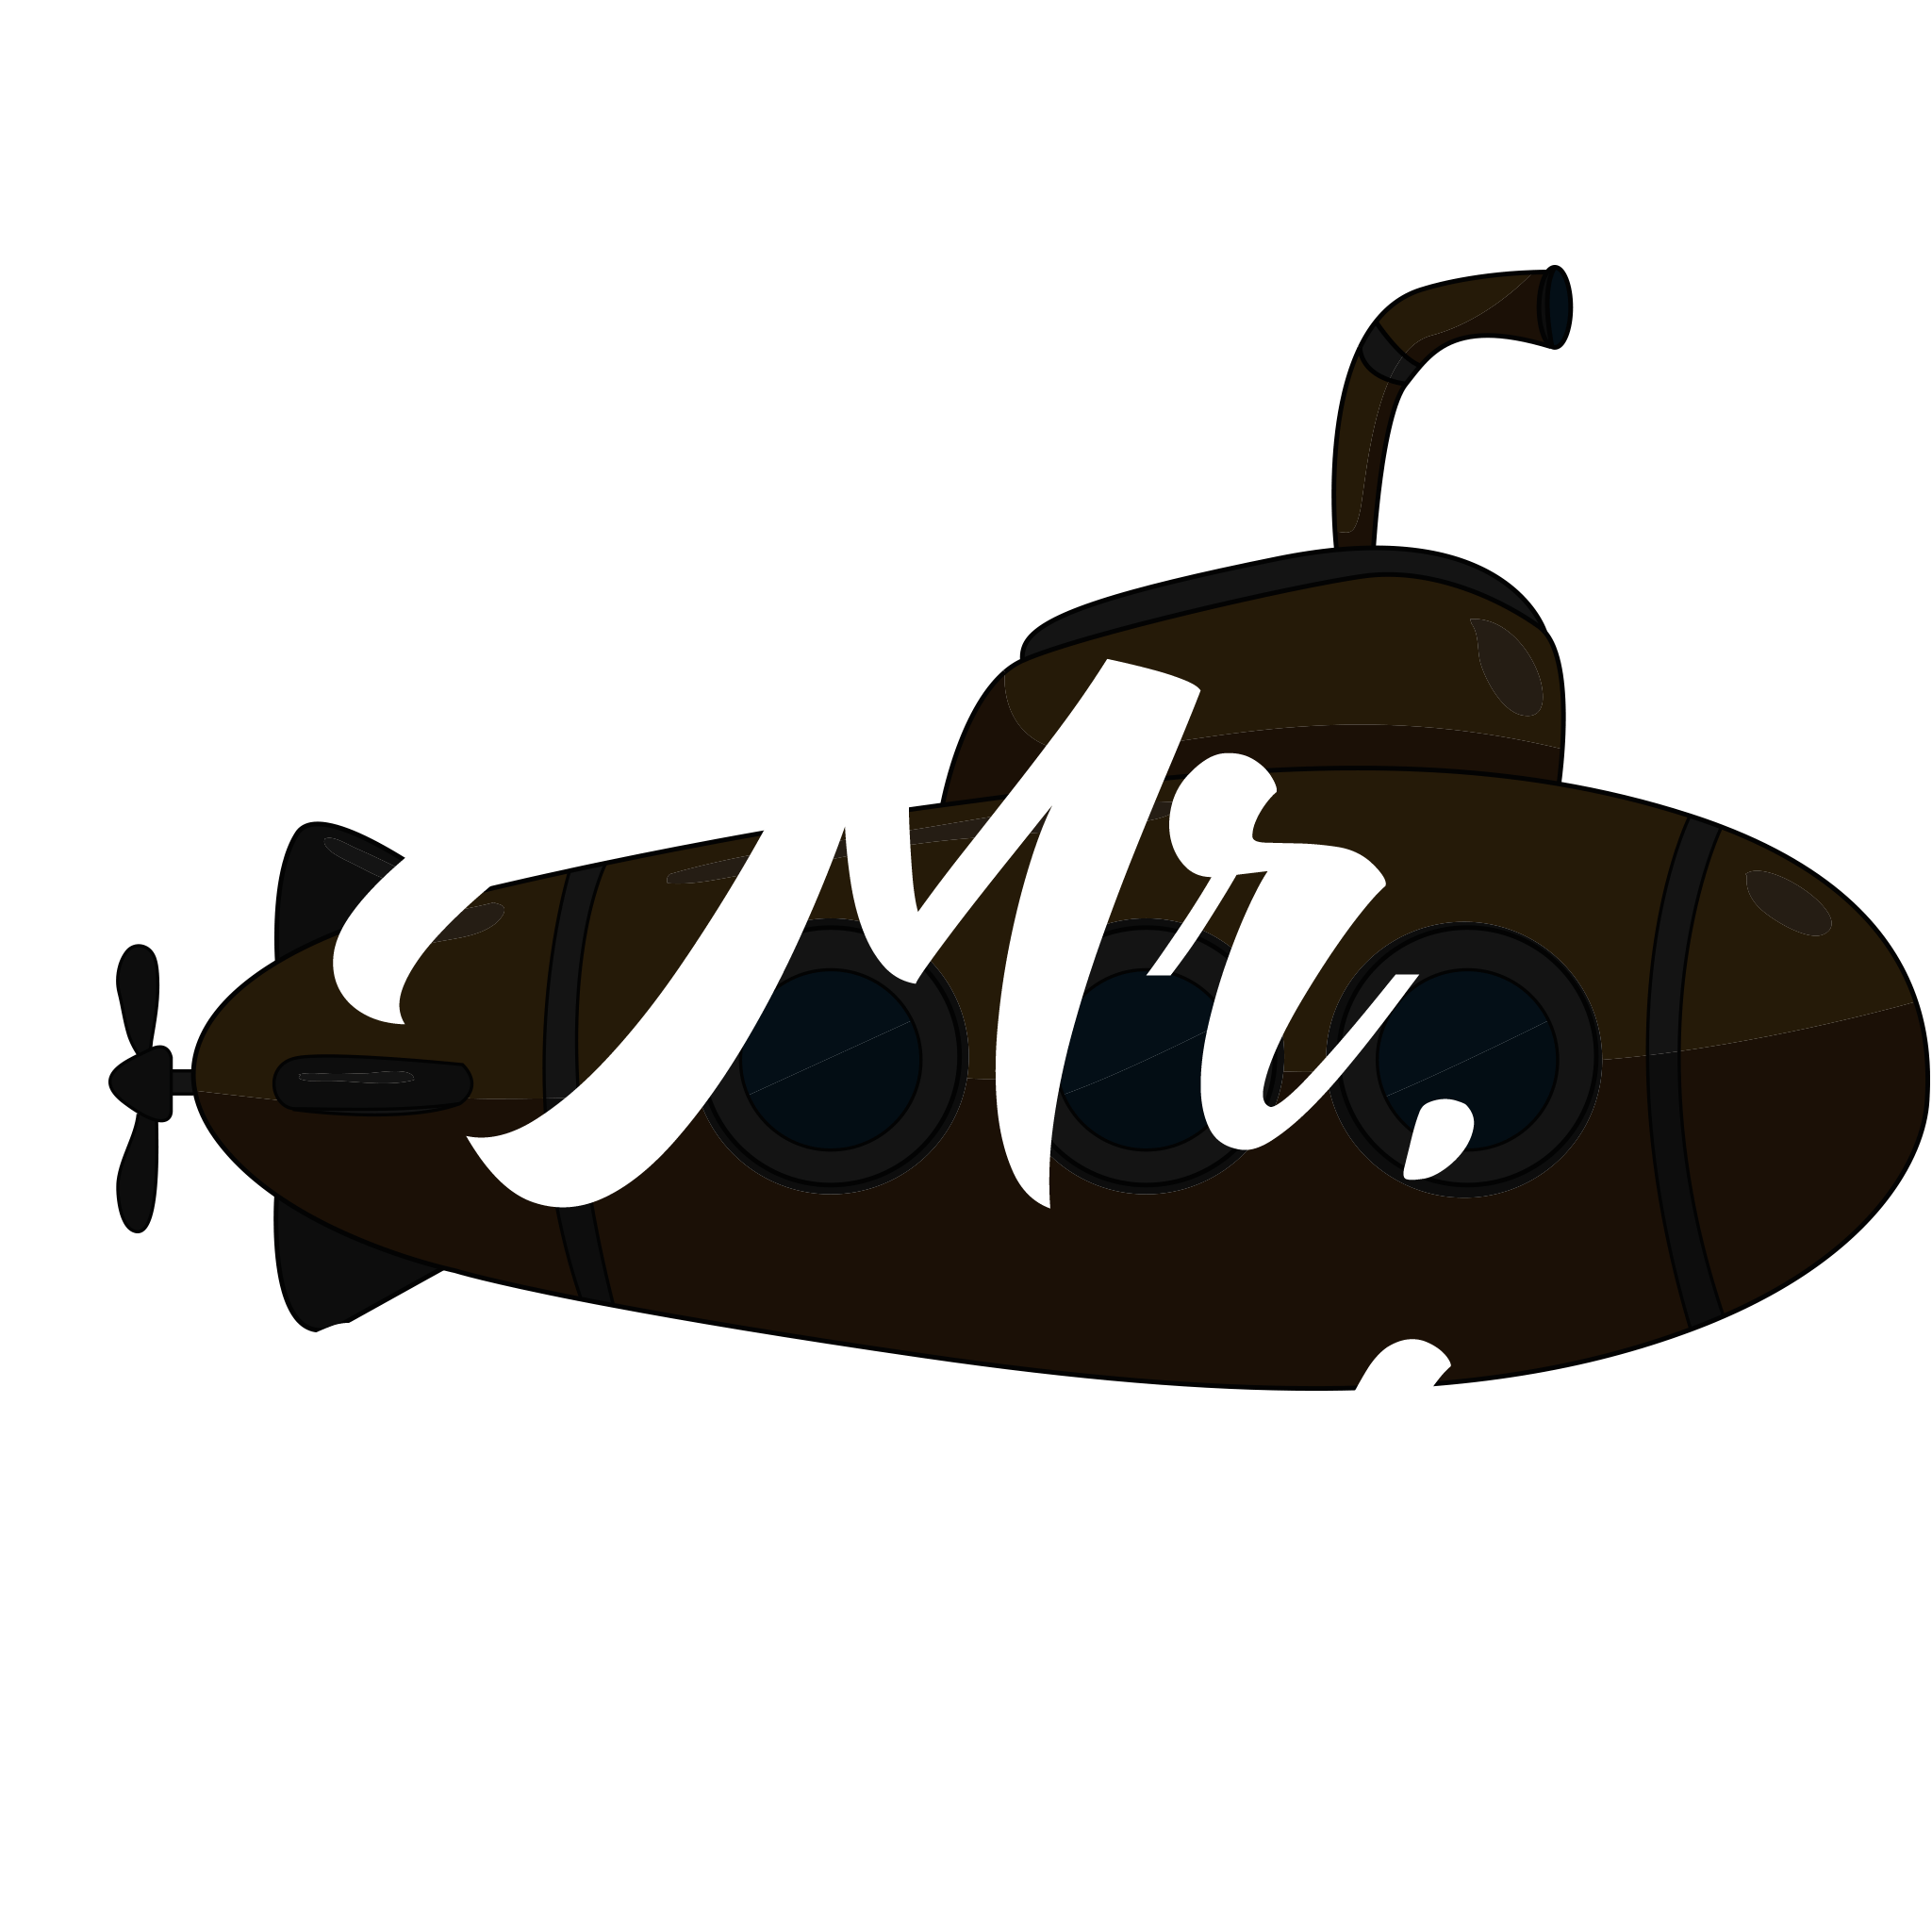 Awards-Mr-Instructor-white